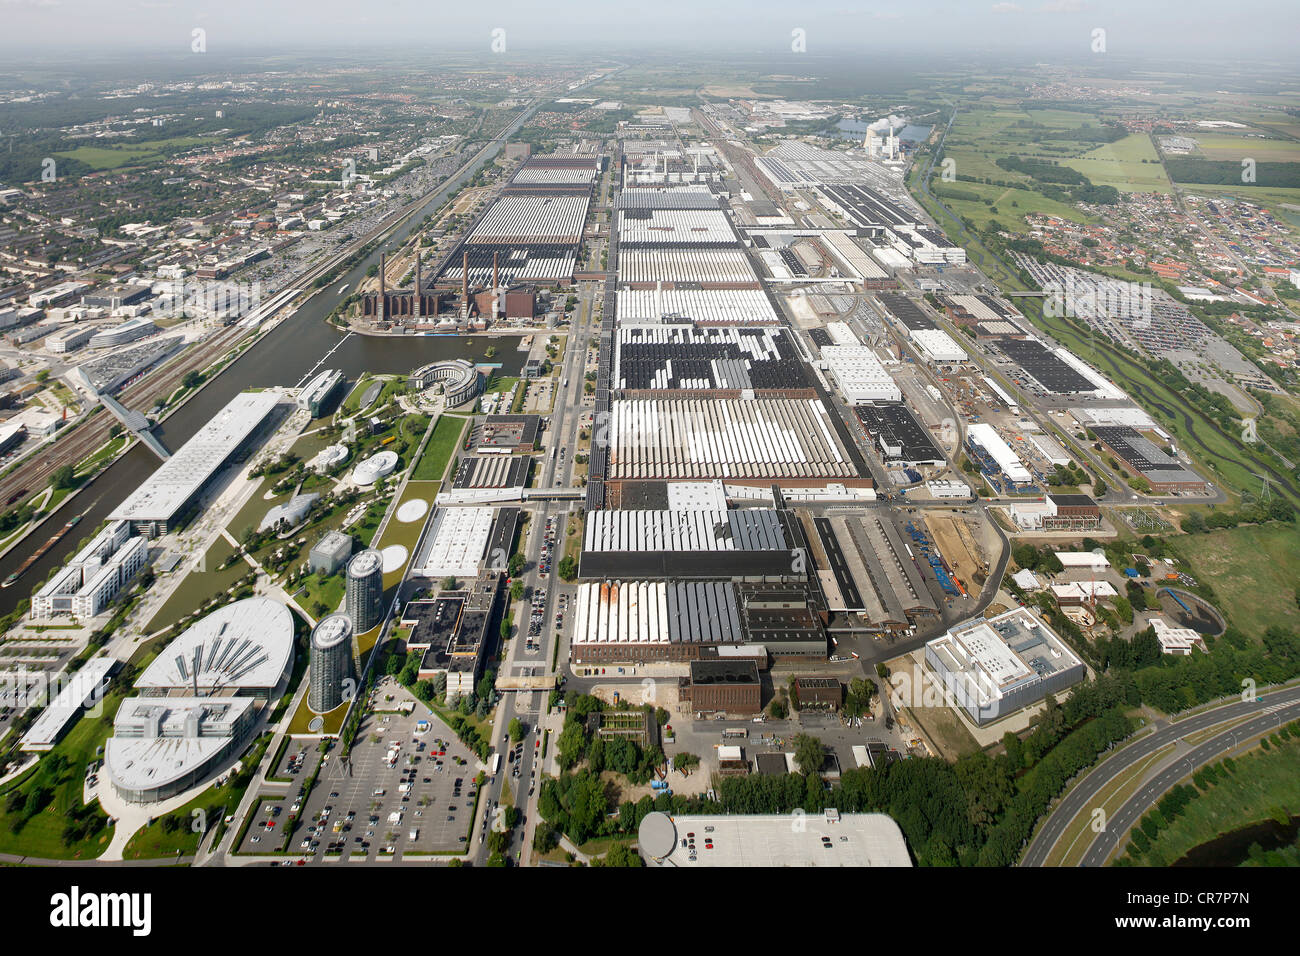 aerial view volkswagen plant vw factory autostadt. Black Bedroom Furniture Sets. Home Design Ideas